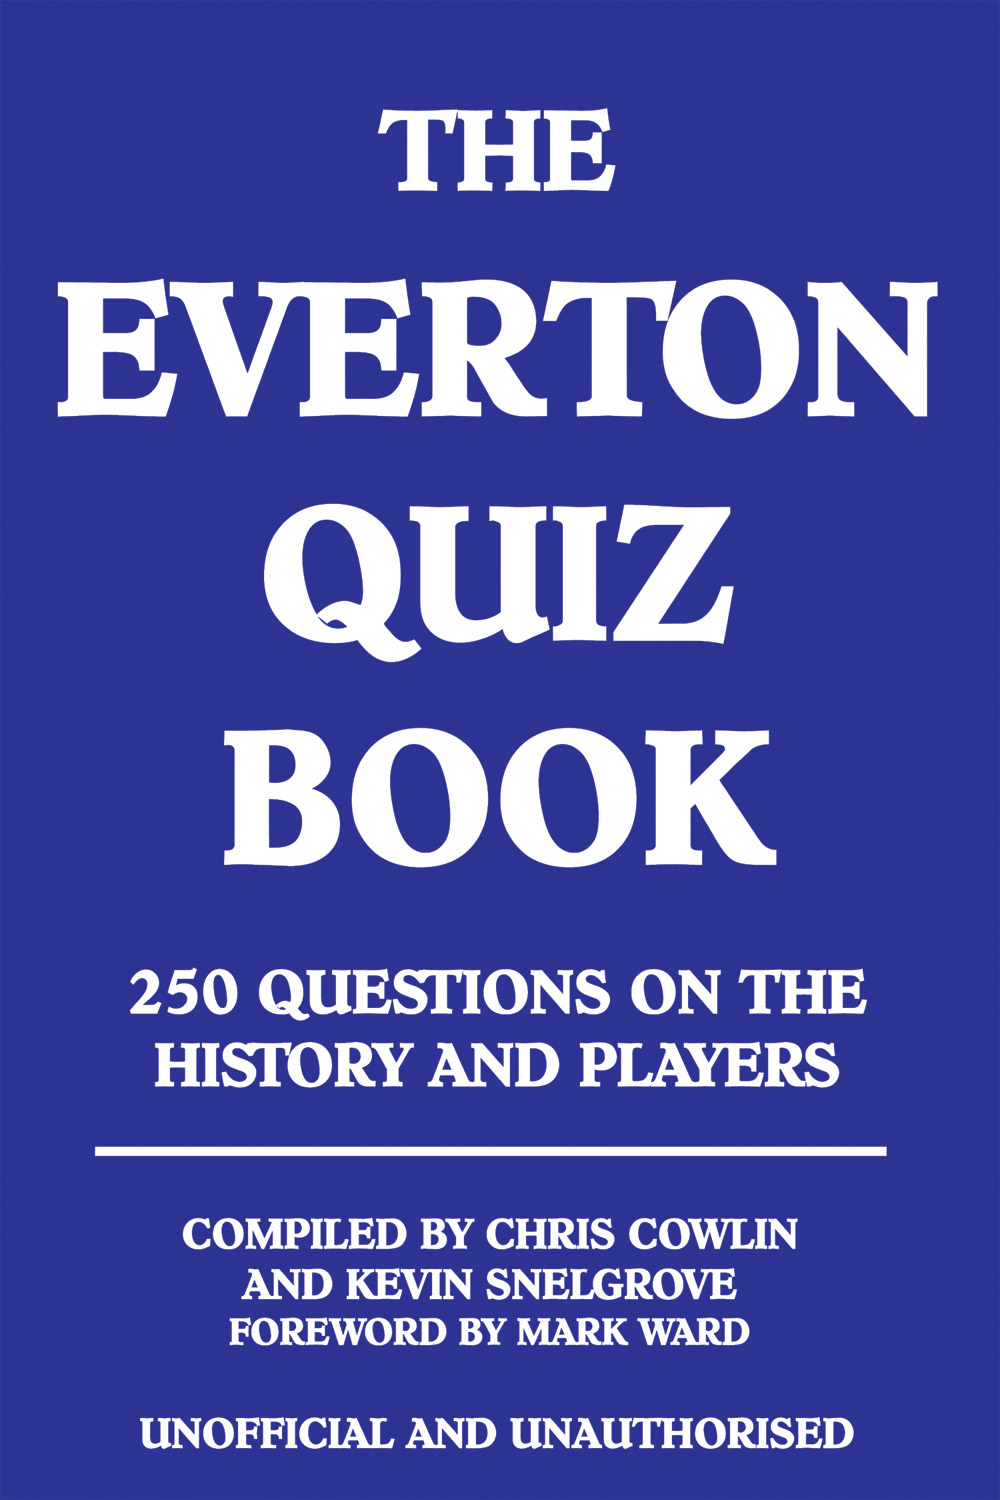 The Everton Quiz Book By: Chris Cowlin, Kevin Snelgrove